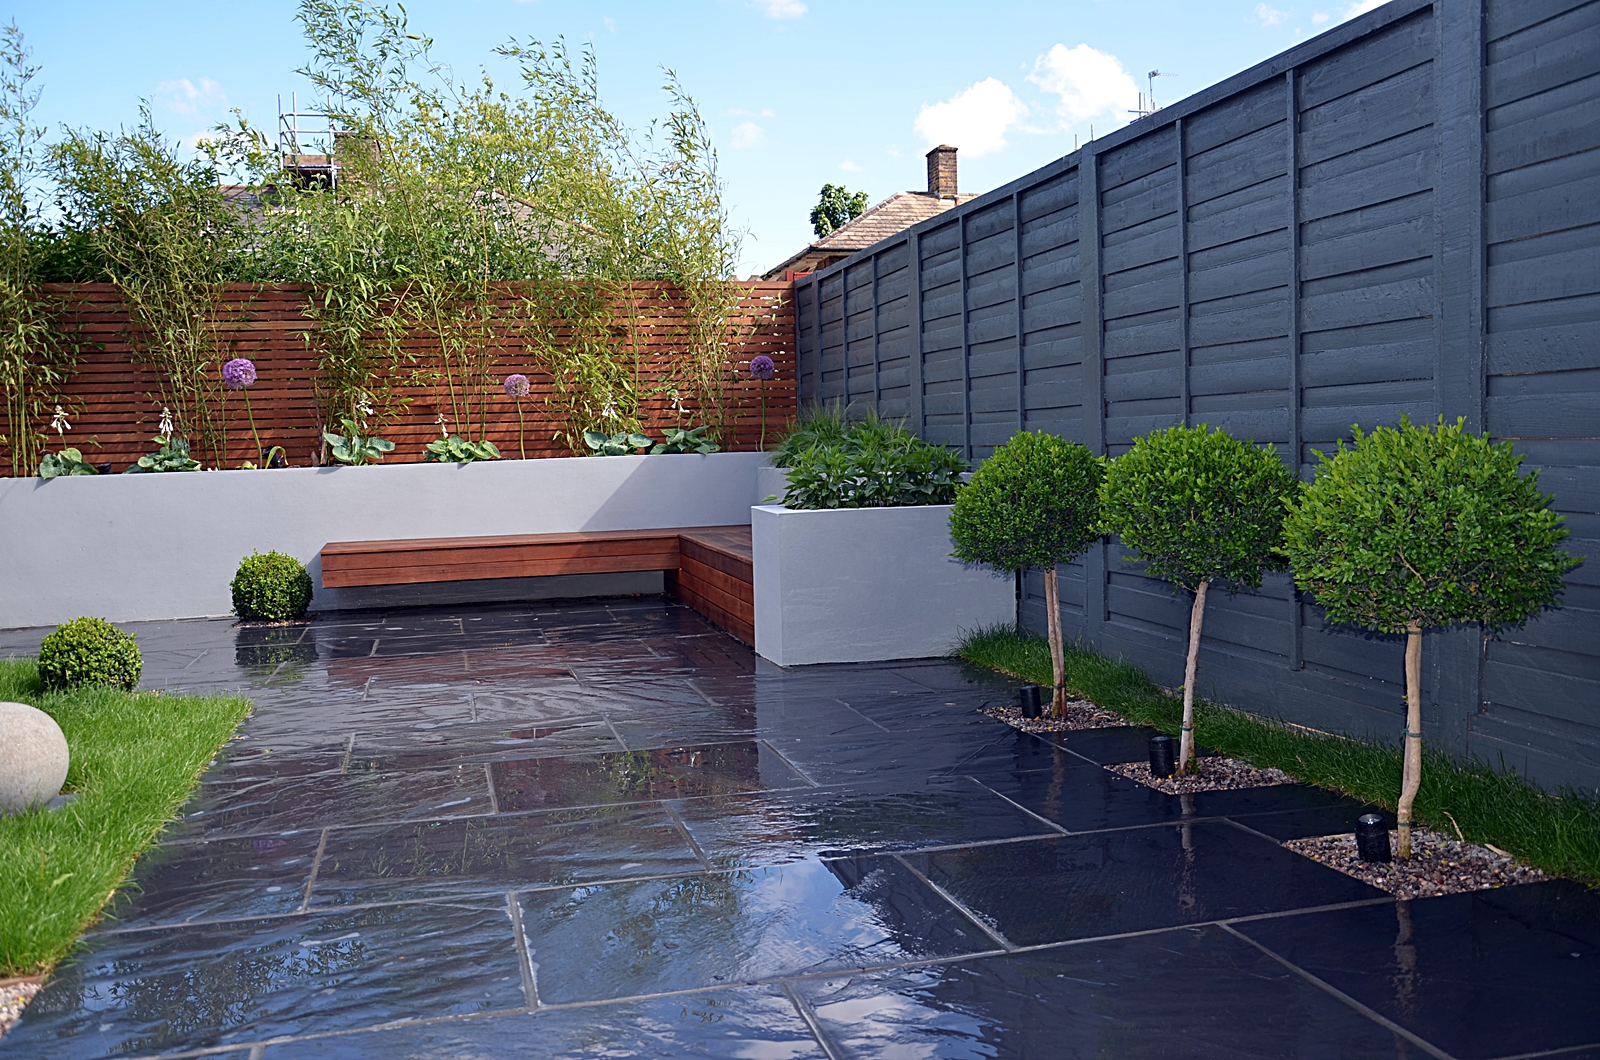 Modern garden design london london garden blog - Garden ideas london ...